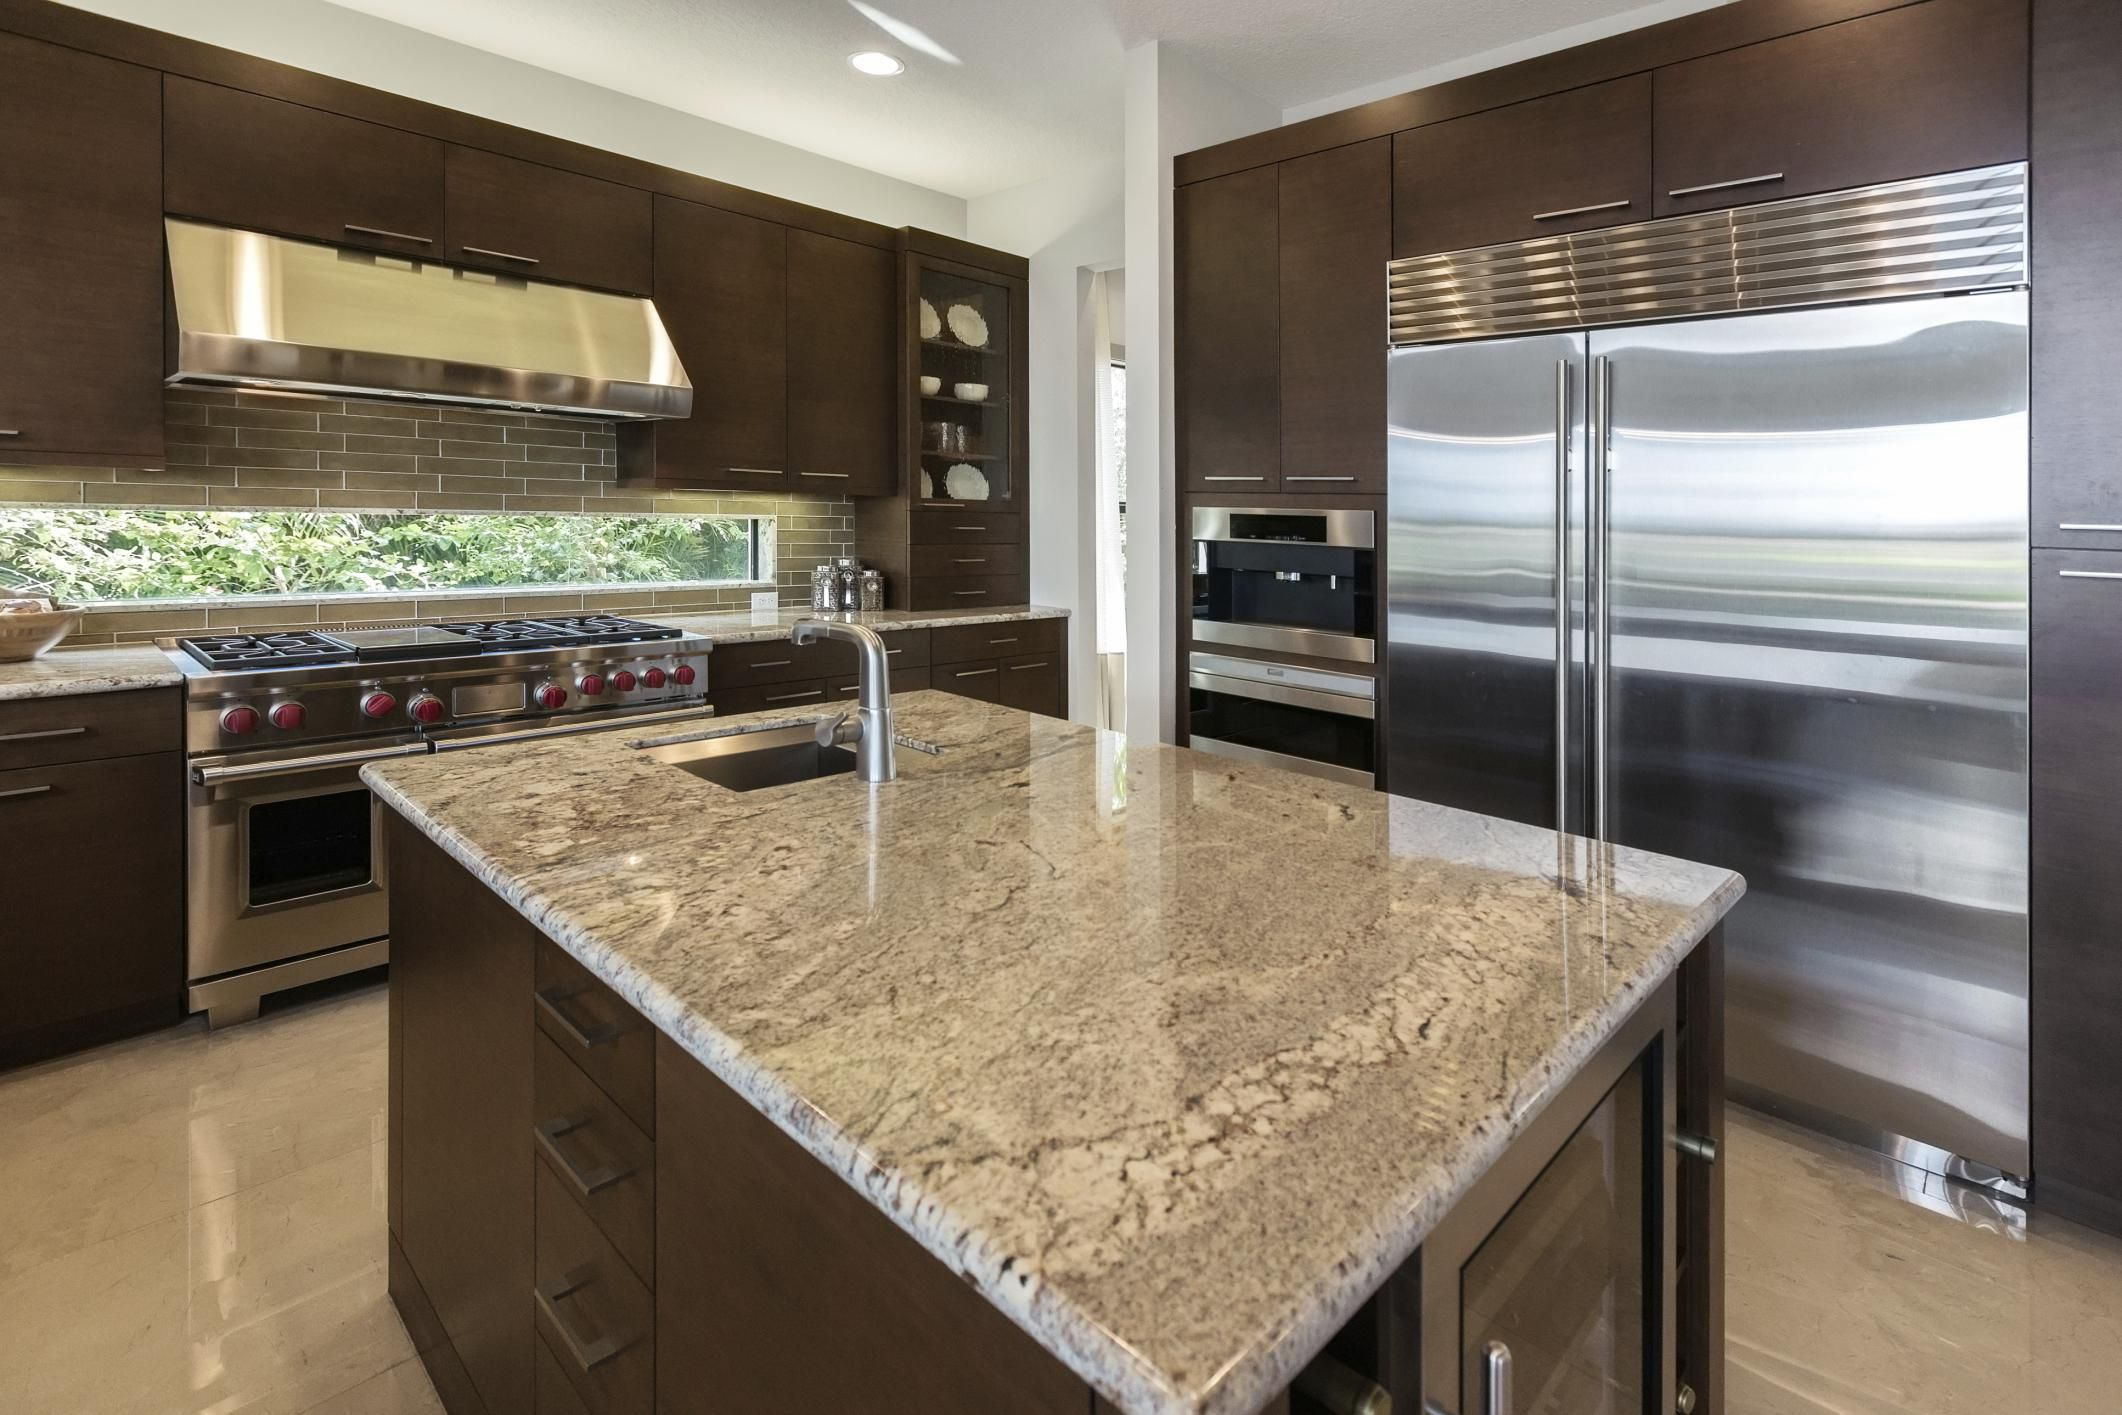 How To Remove Stains From Bathroom Countertops Sealing And Removing Stains From Granite Countertops